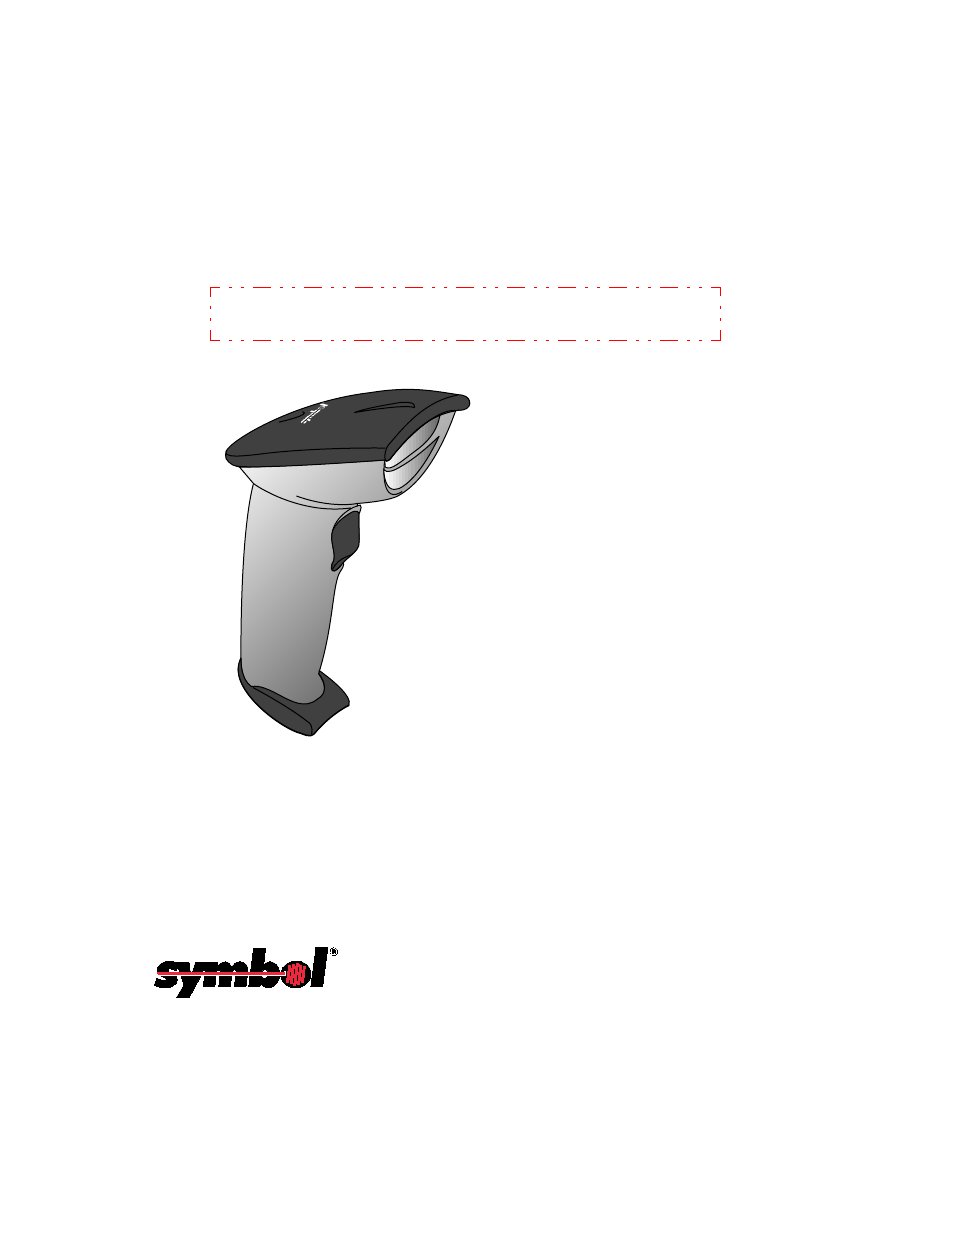 Symbol Technologies Ls 2106 User Manual 100 Pages